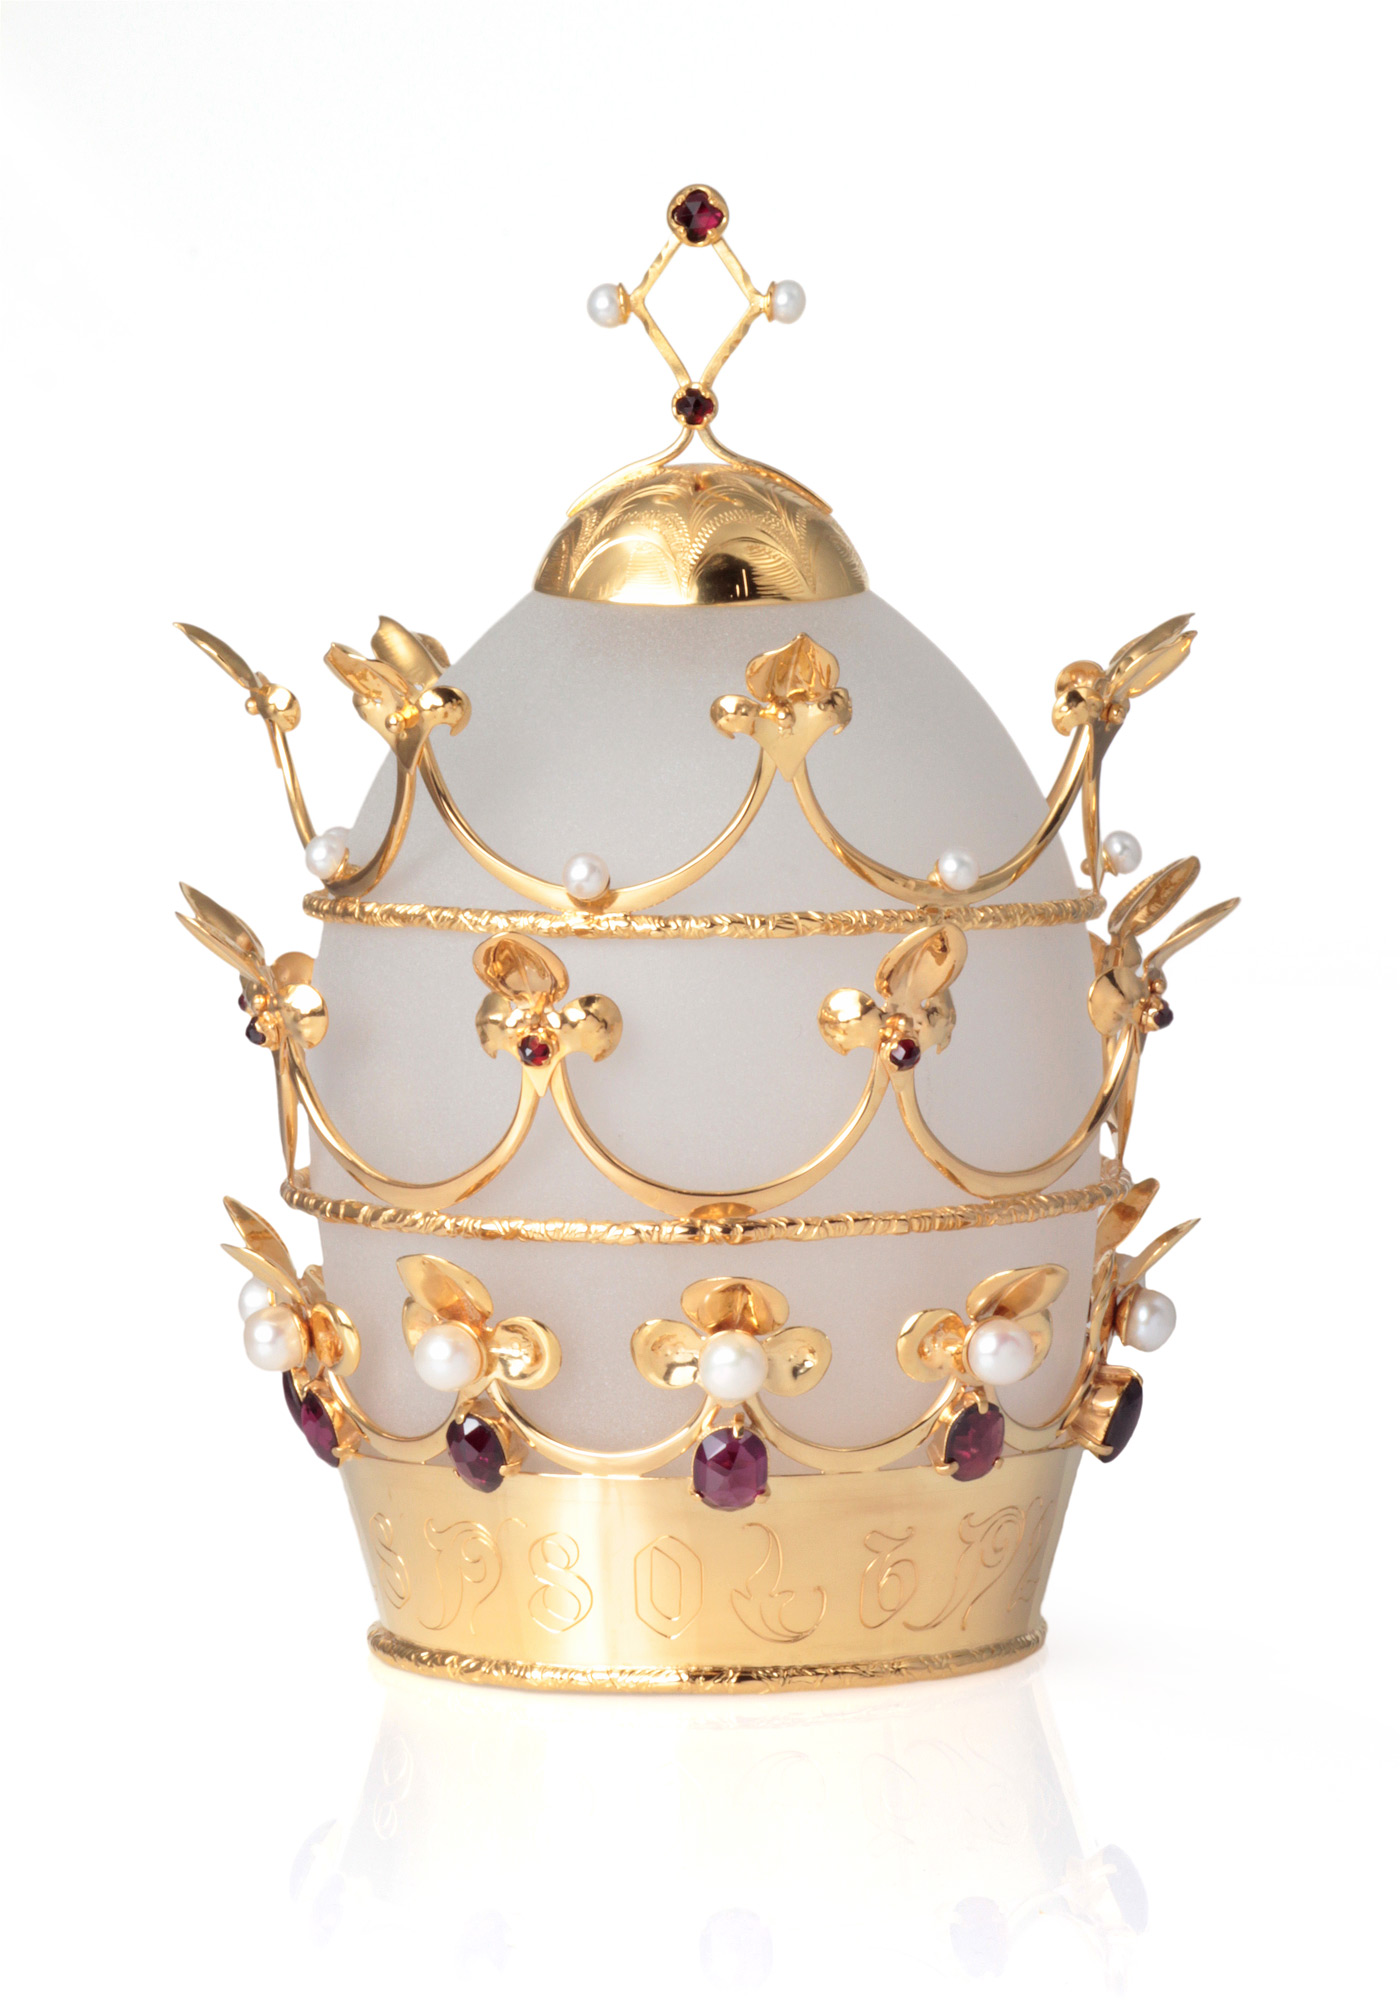 Papal Tiara by Anastasia Young Jewellery for The Lily Holds Firm